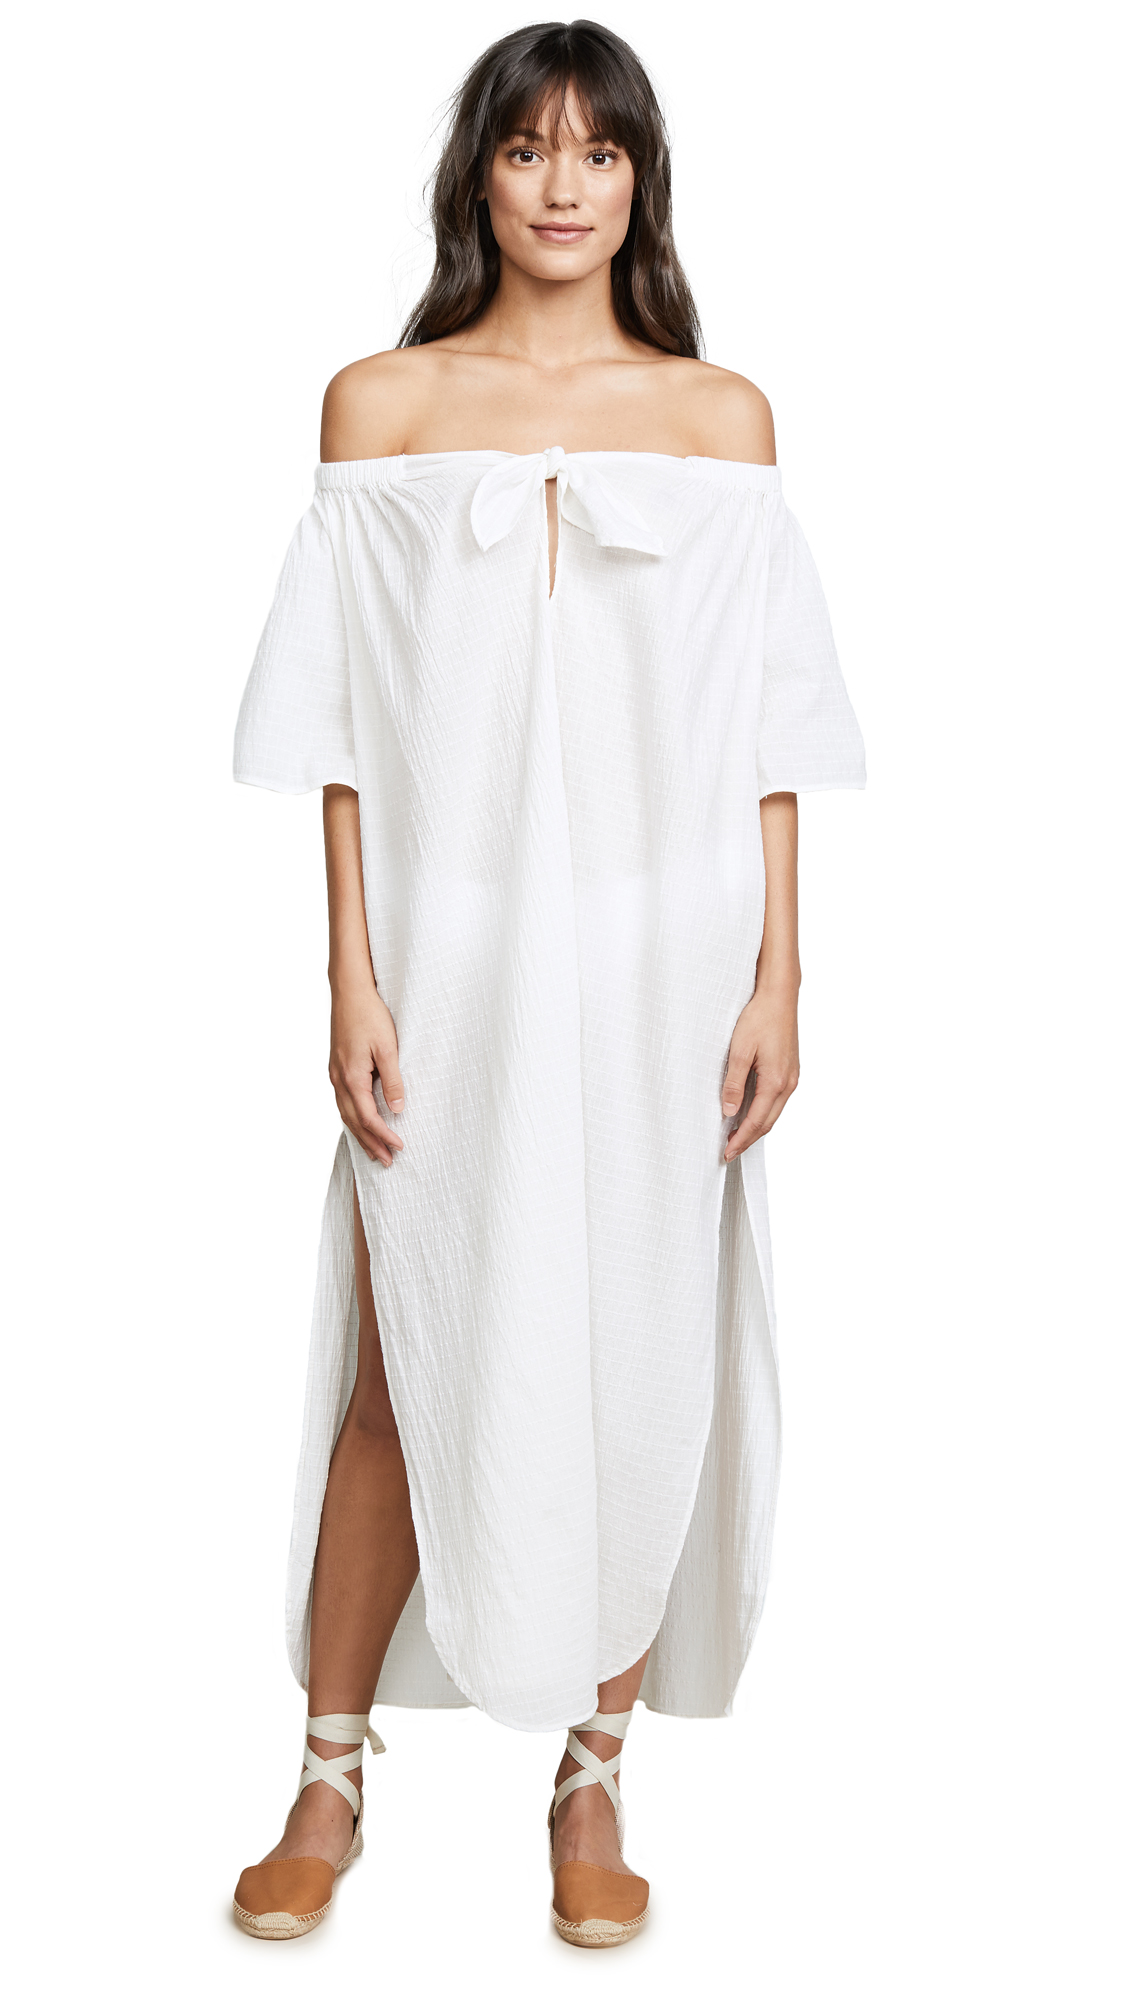 Mara Hoffman Ivory Kamala Dress